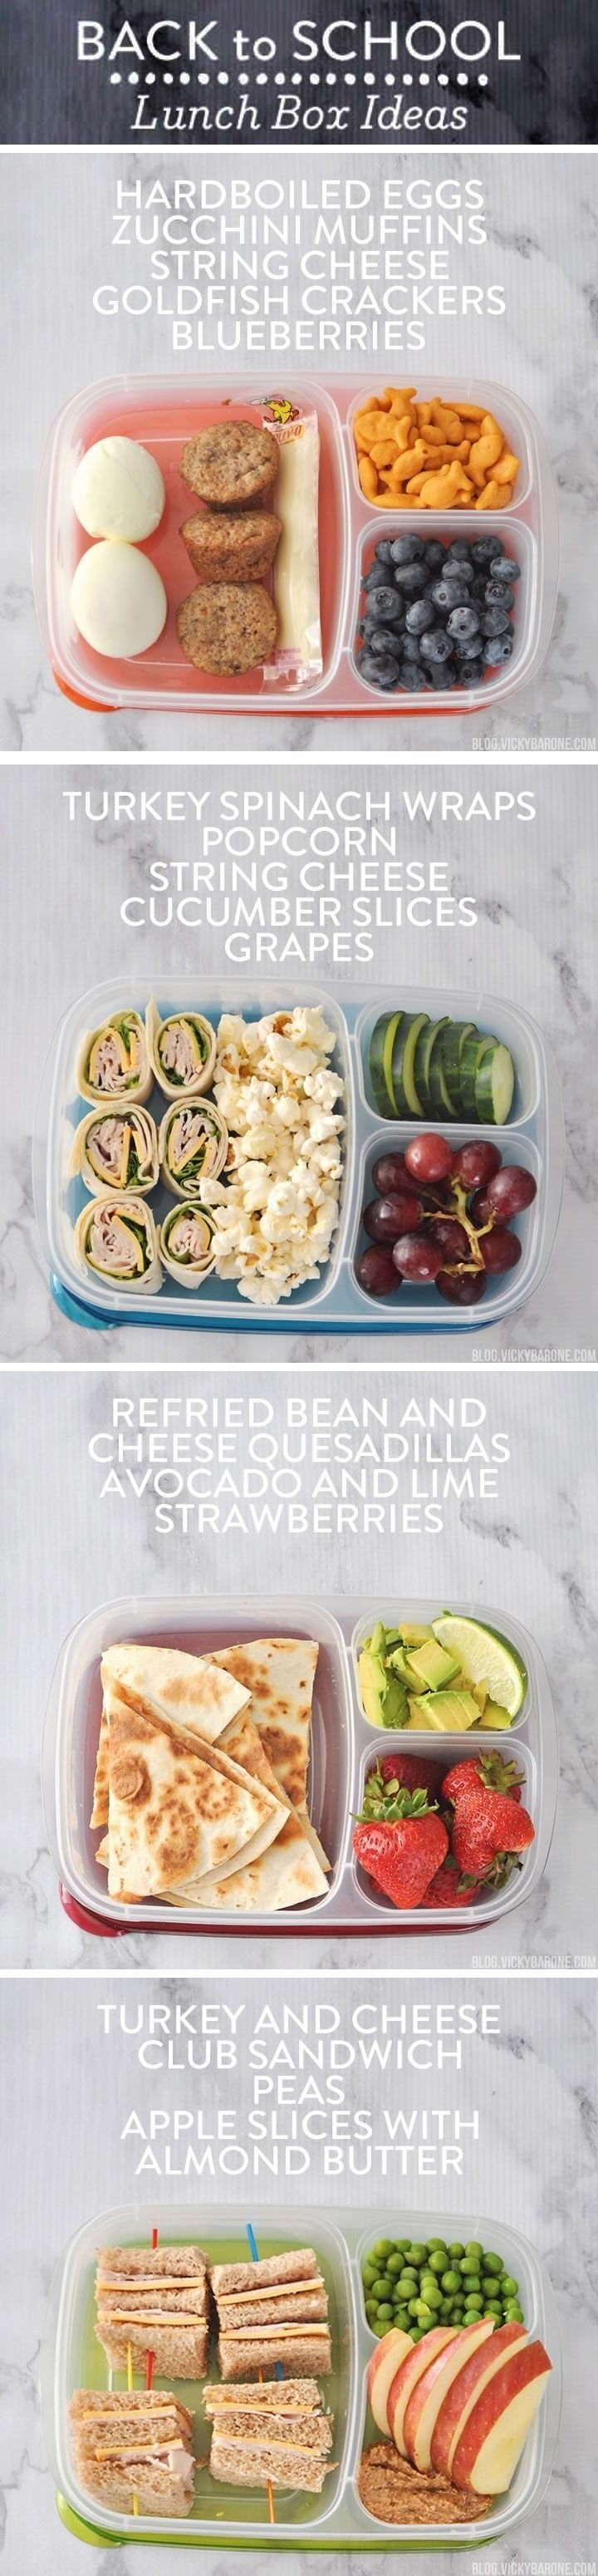 10 Stylish Lunch Ideas For High School 265 best back to school crafts lunch ideas images on pinterest 2020